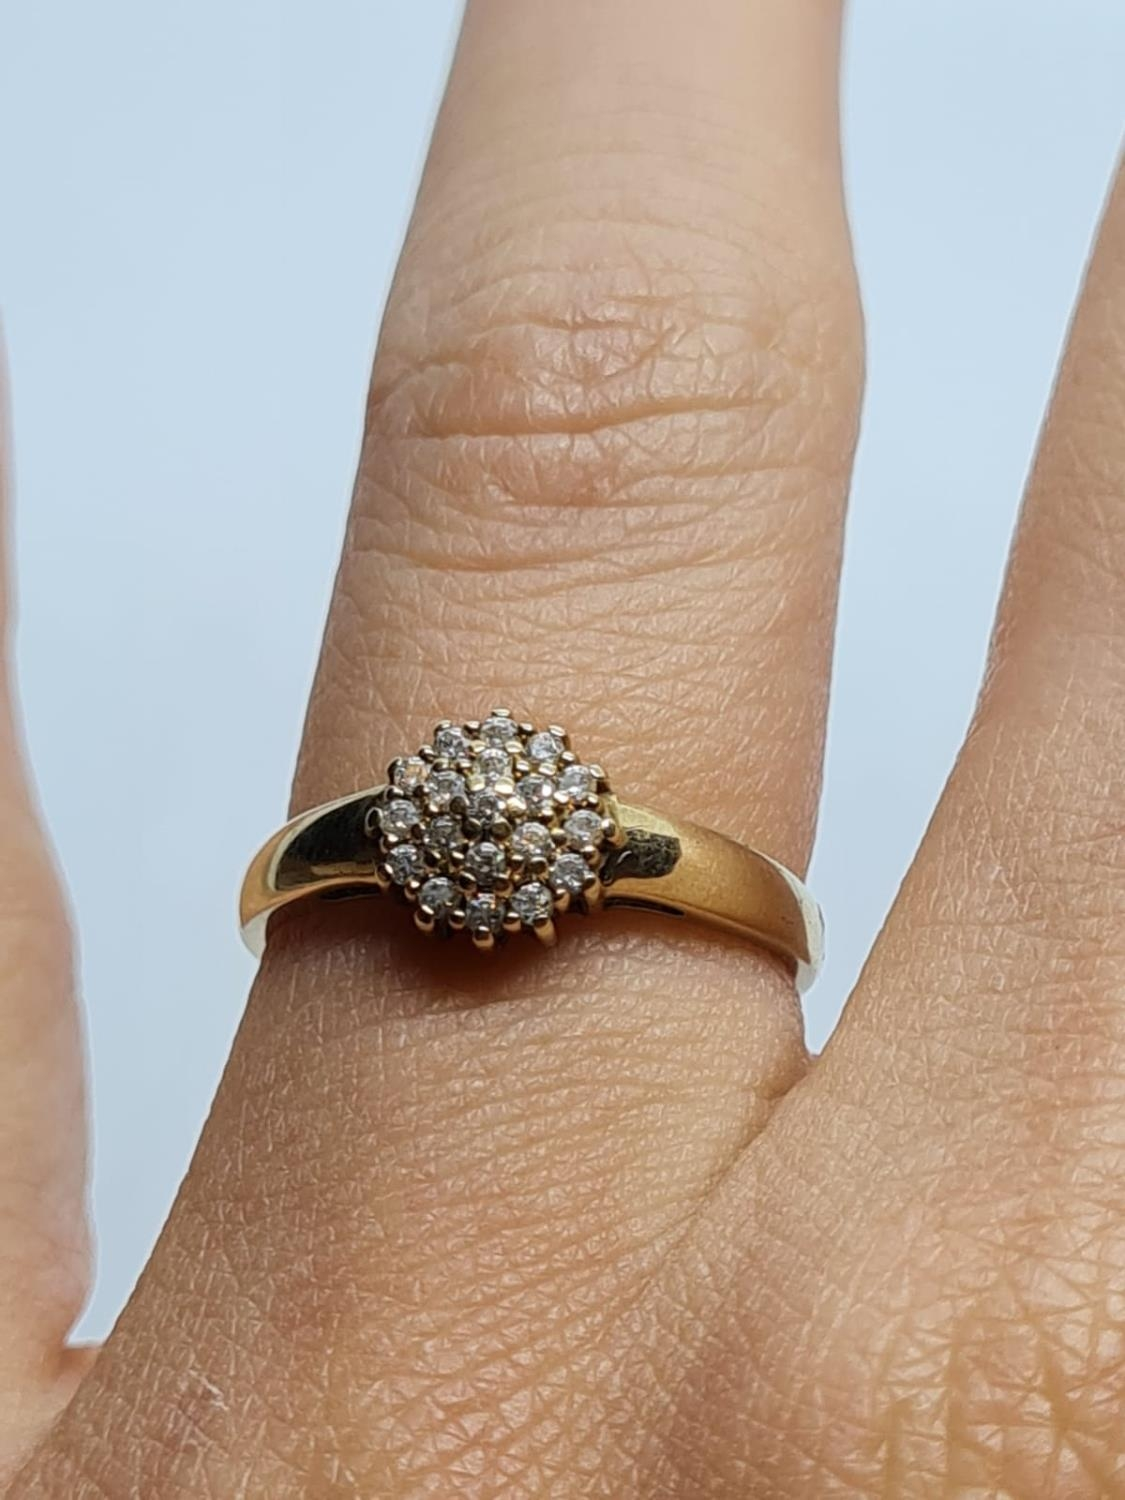 9K YELLOW GOLD CZ STONE SET CLUSTER RING WEIGHT 1.7G SIZE M - Image 4 of 4